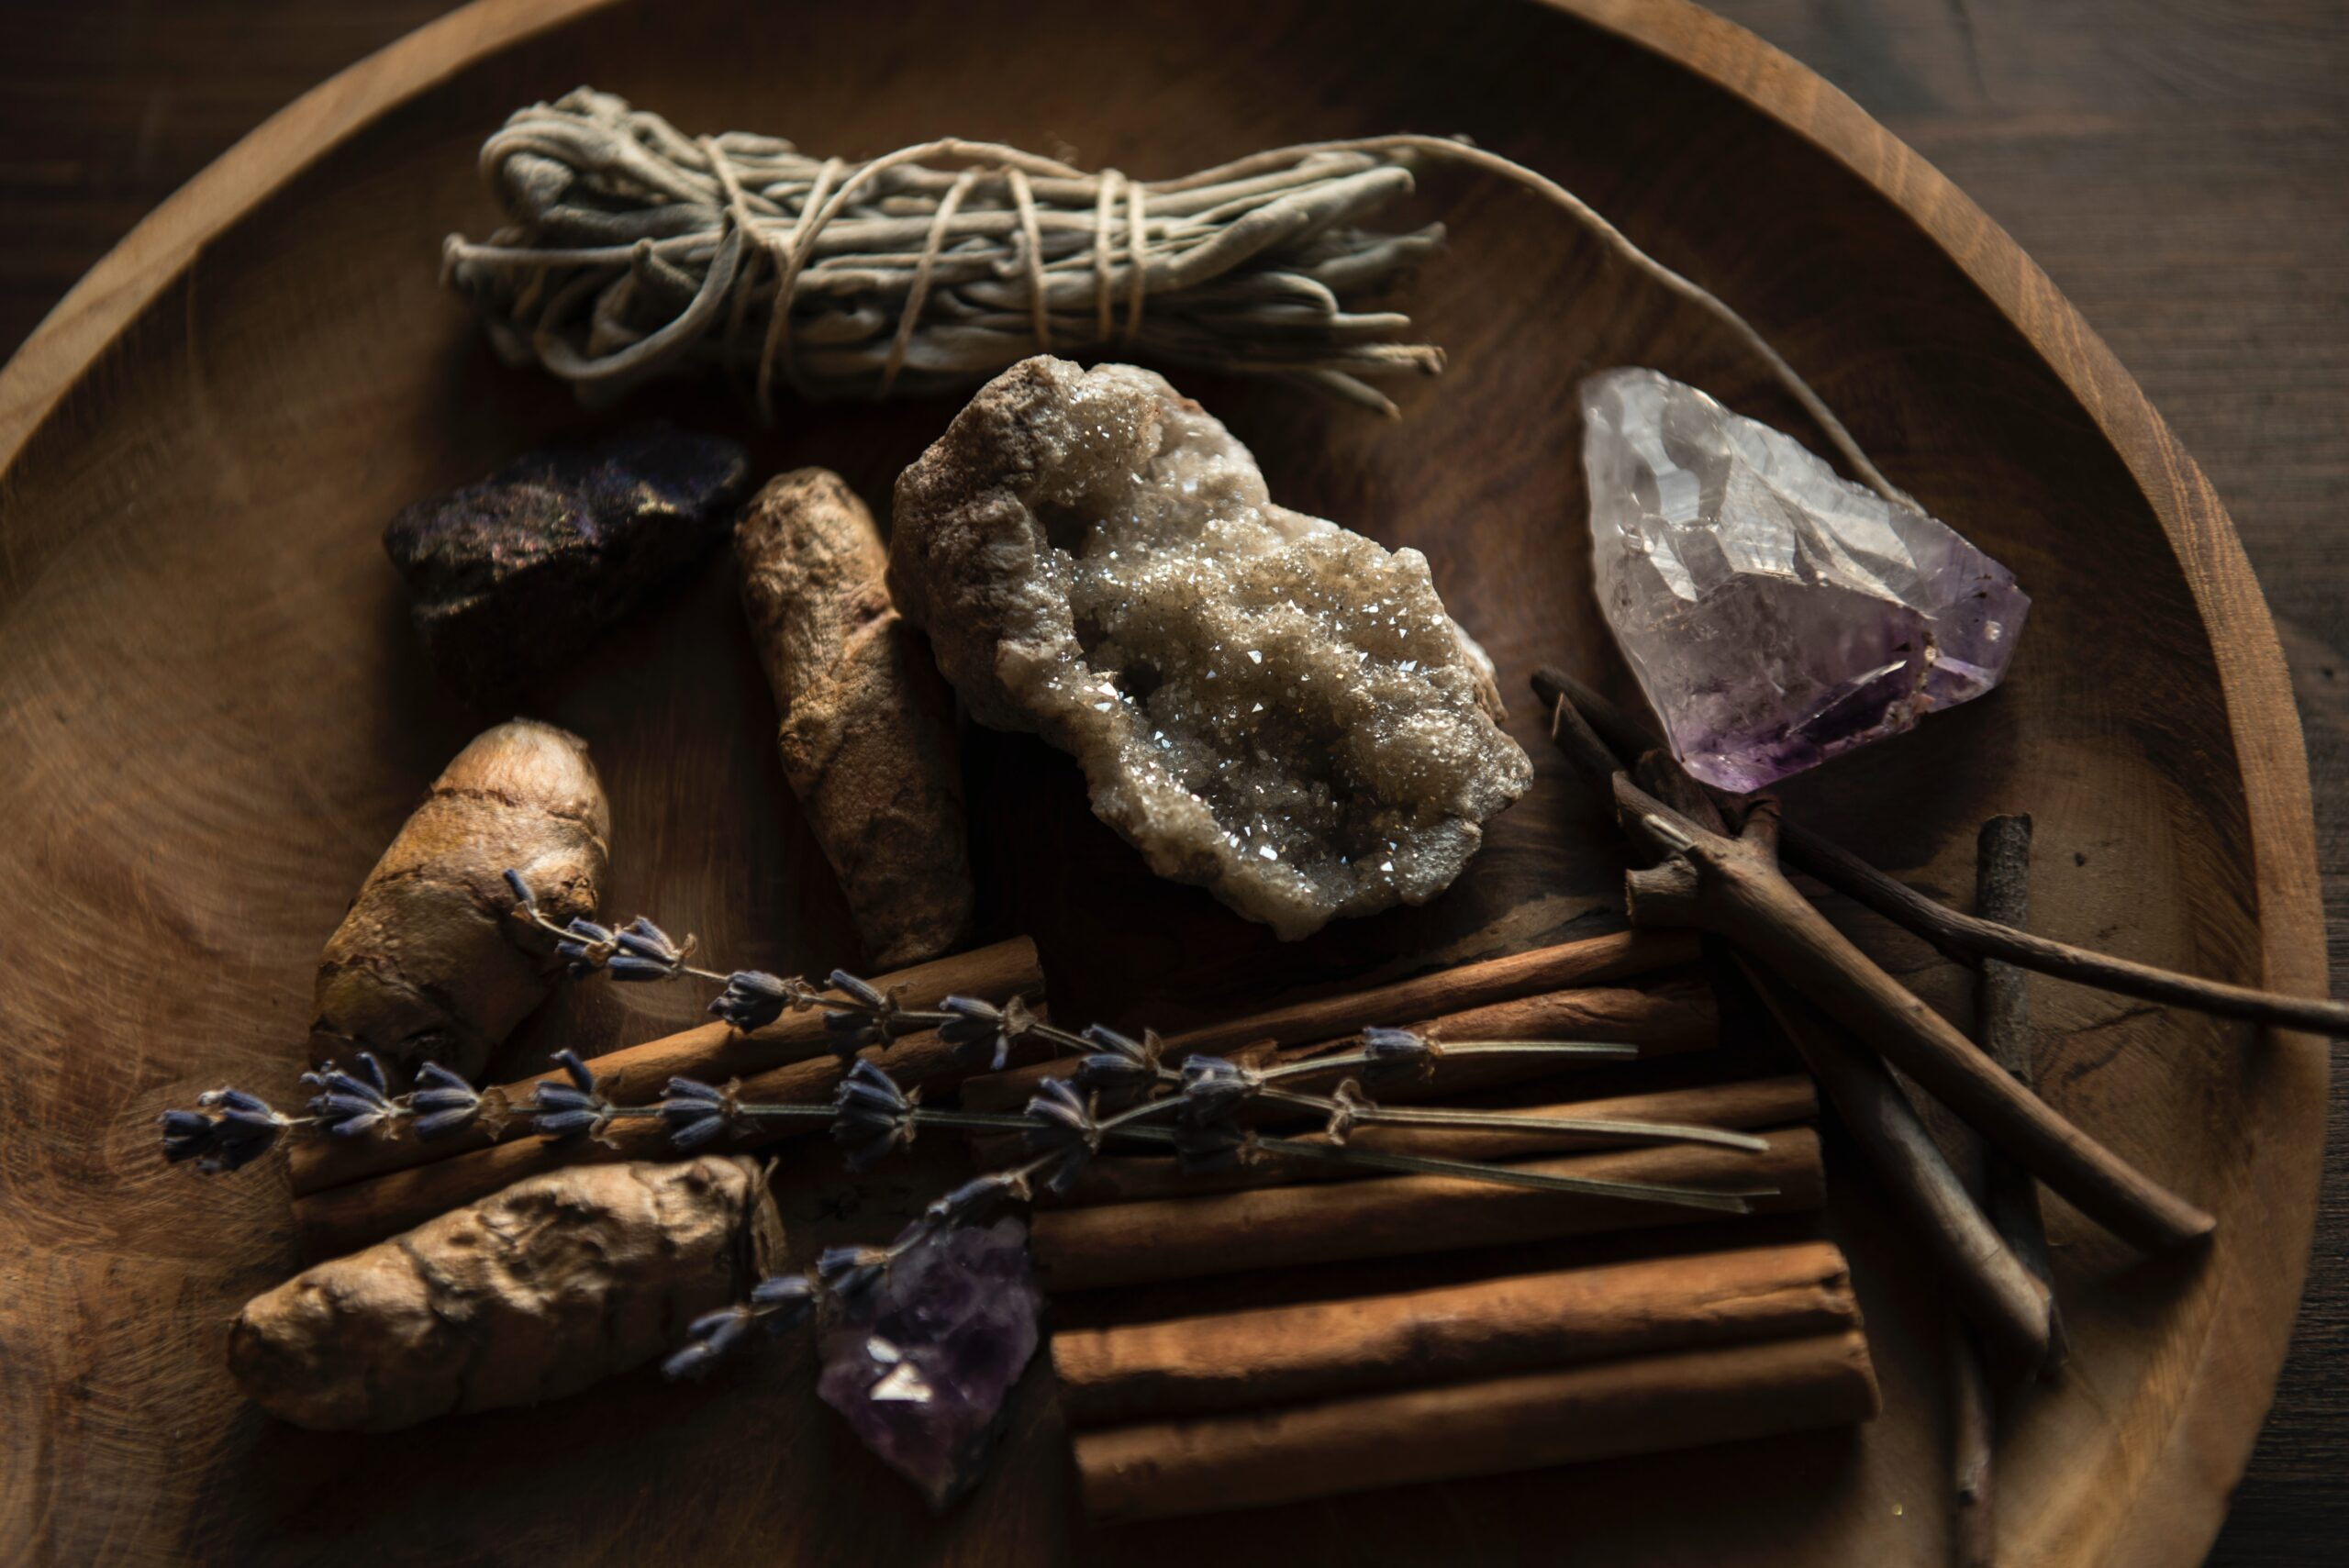 Wooden bowl with sage, lavender, cinnamon, and a crystal.